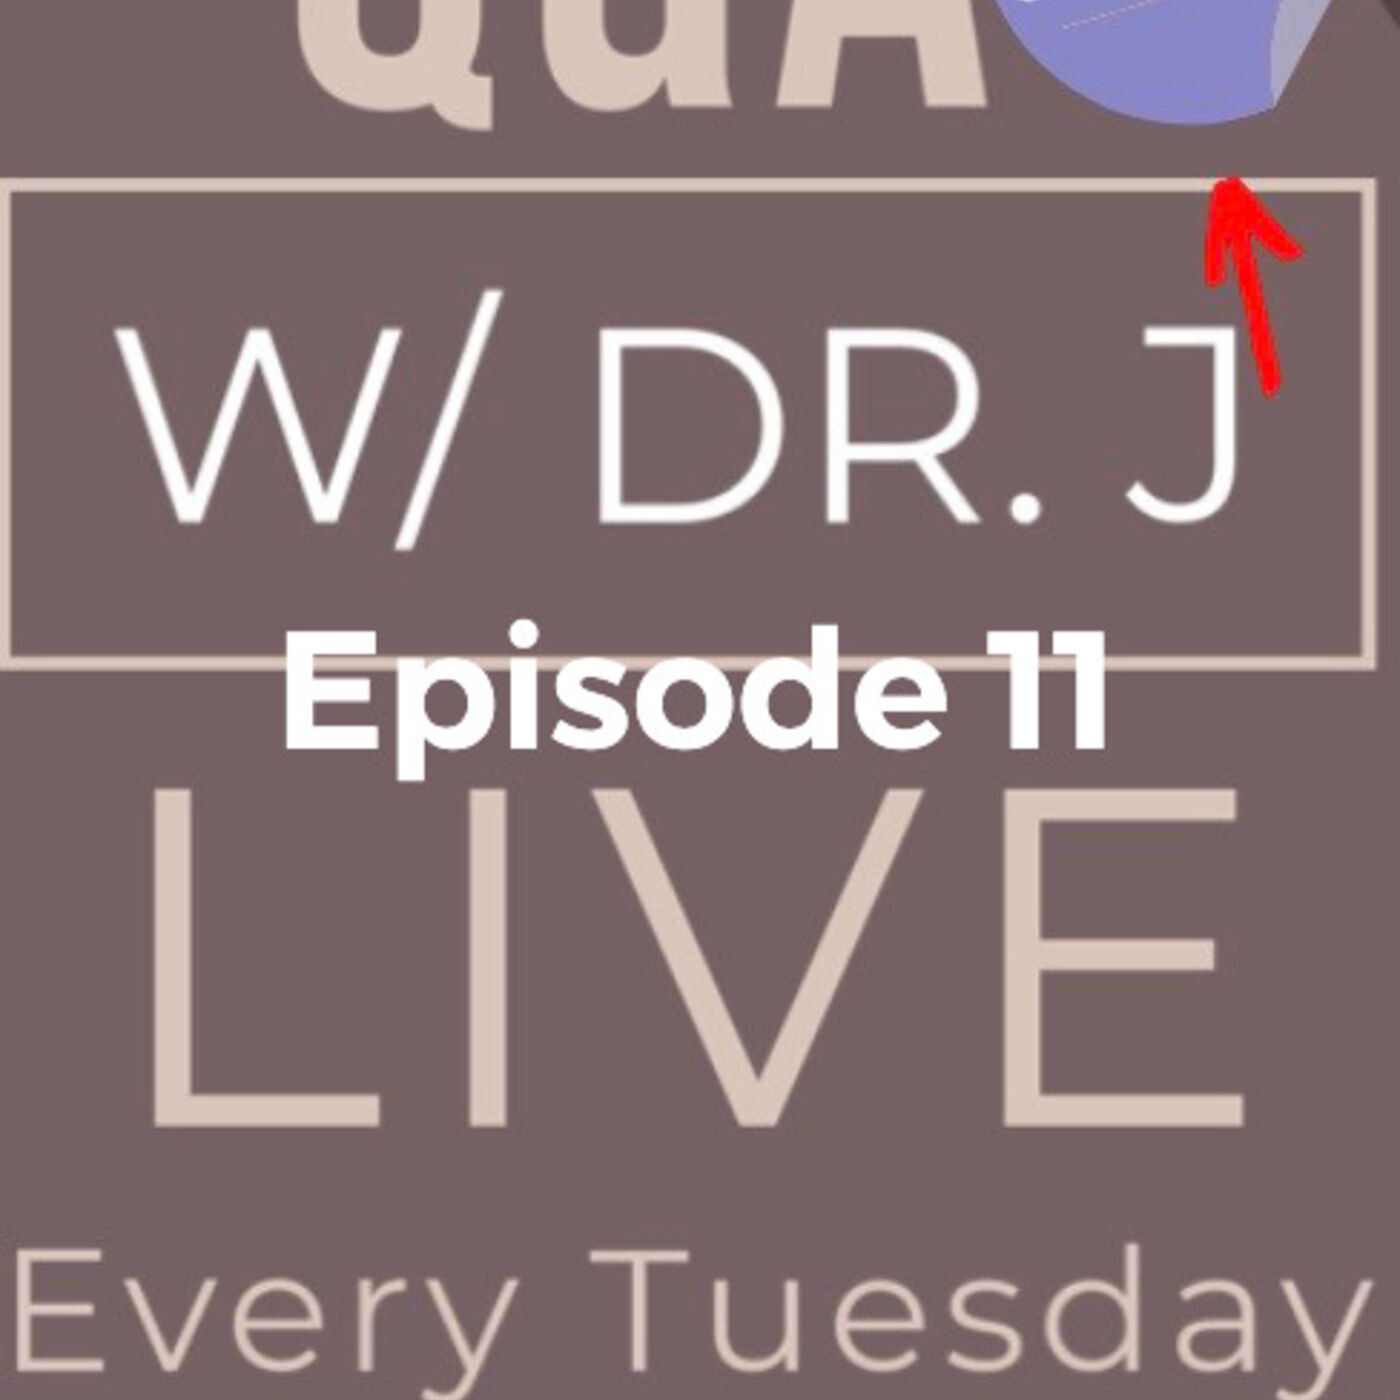 EP 11 Q&A with Dr J | Lip Problems and How to Fix them | Lip Fillers Gone Wrong